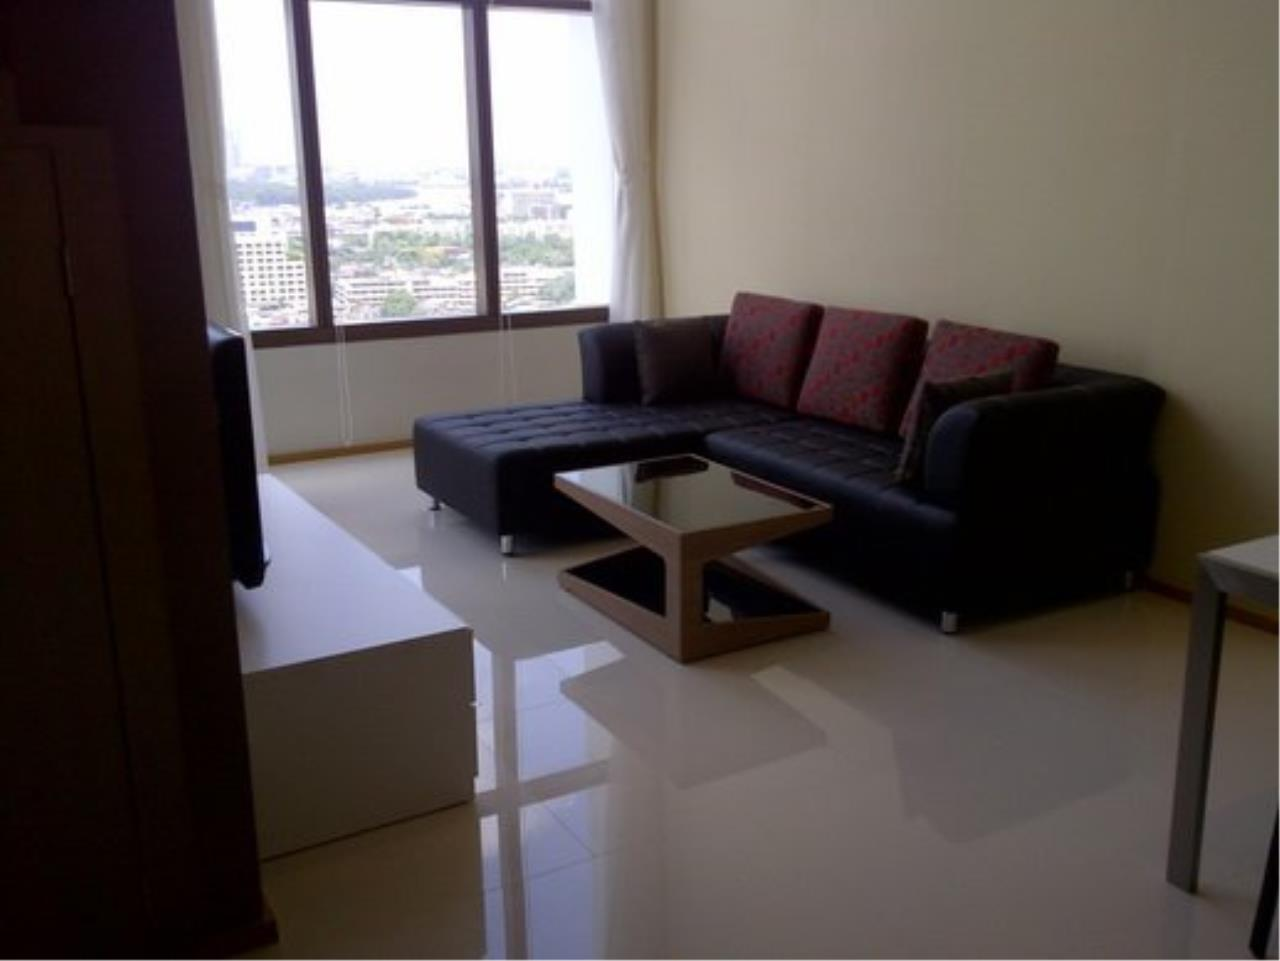 Piri Property Agency's Duplex 1 Bedroom Condo in the Emporio Place building for rent on high floor 1